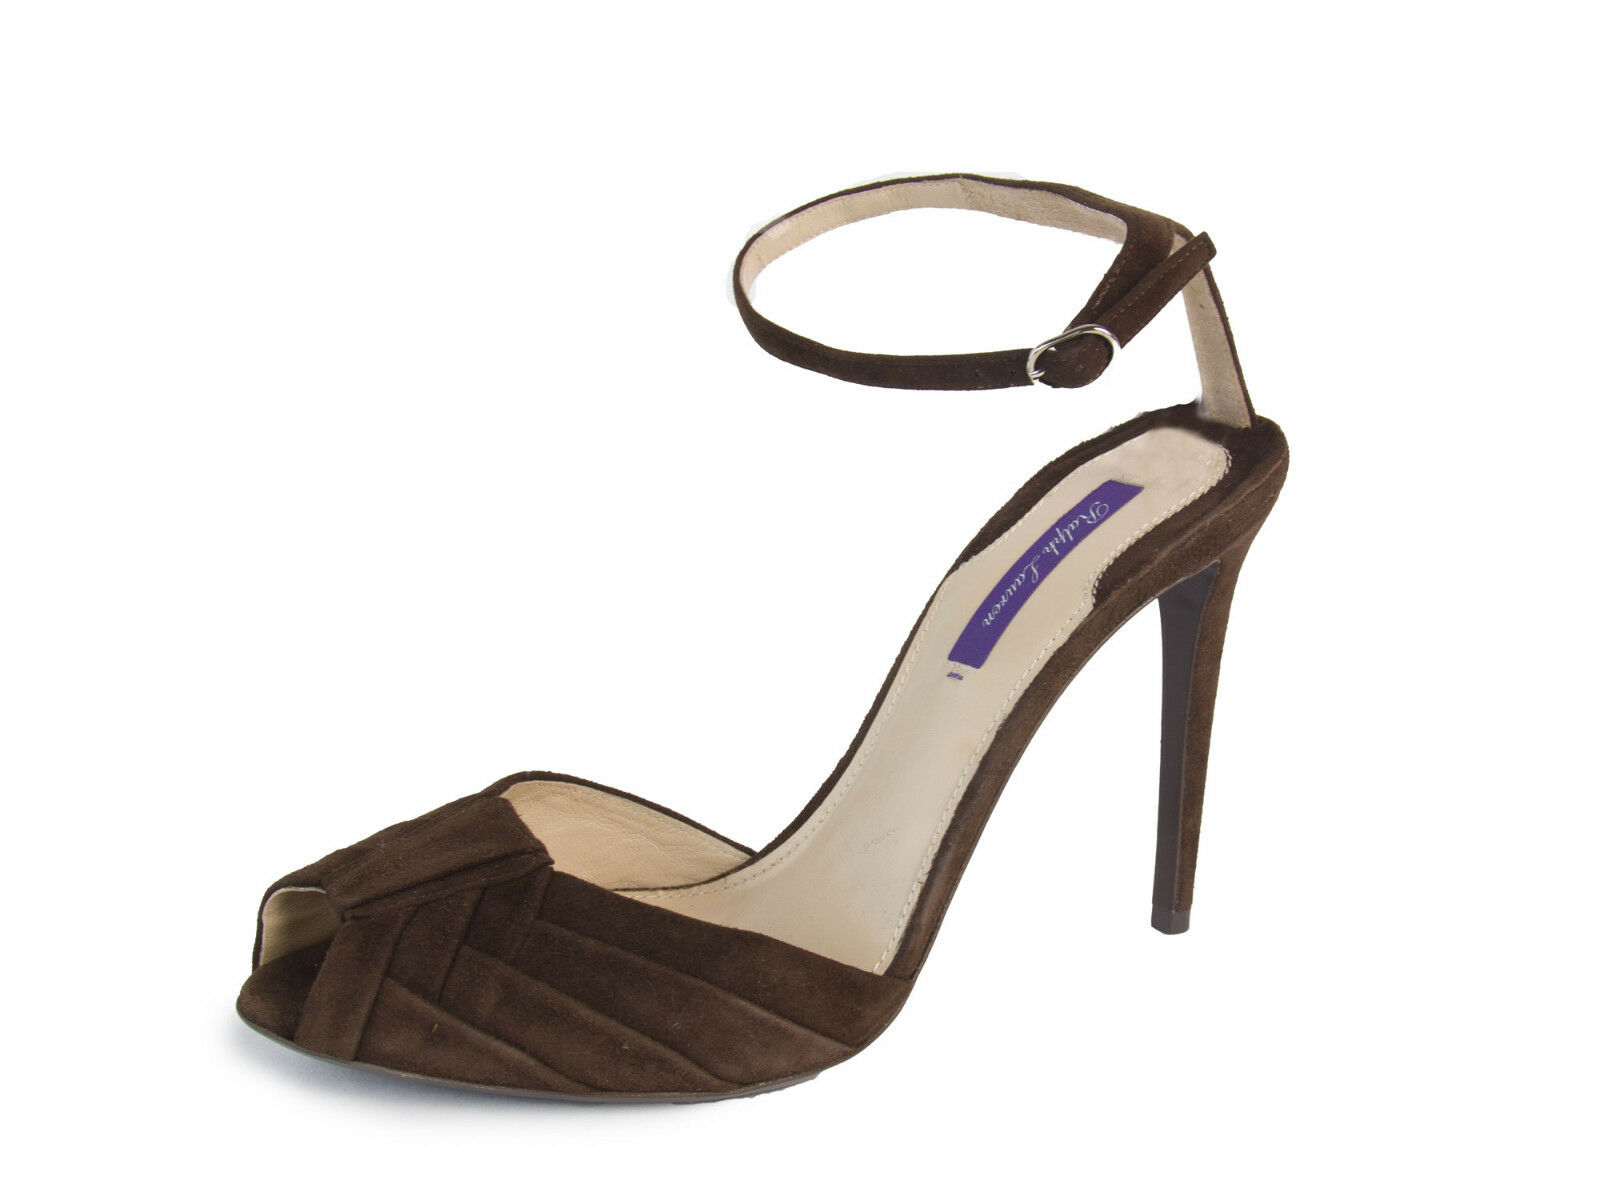 RALPH LAUREN Purple Label Dark Brown Suede Ankle Strap Pumps Sz 9.5 NEW